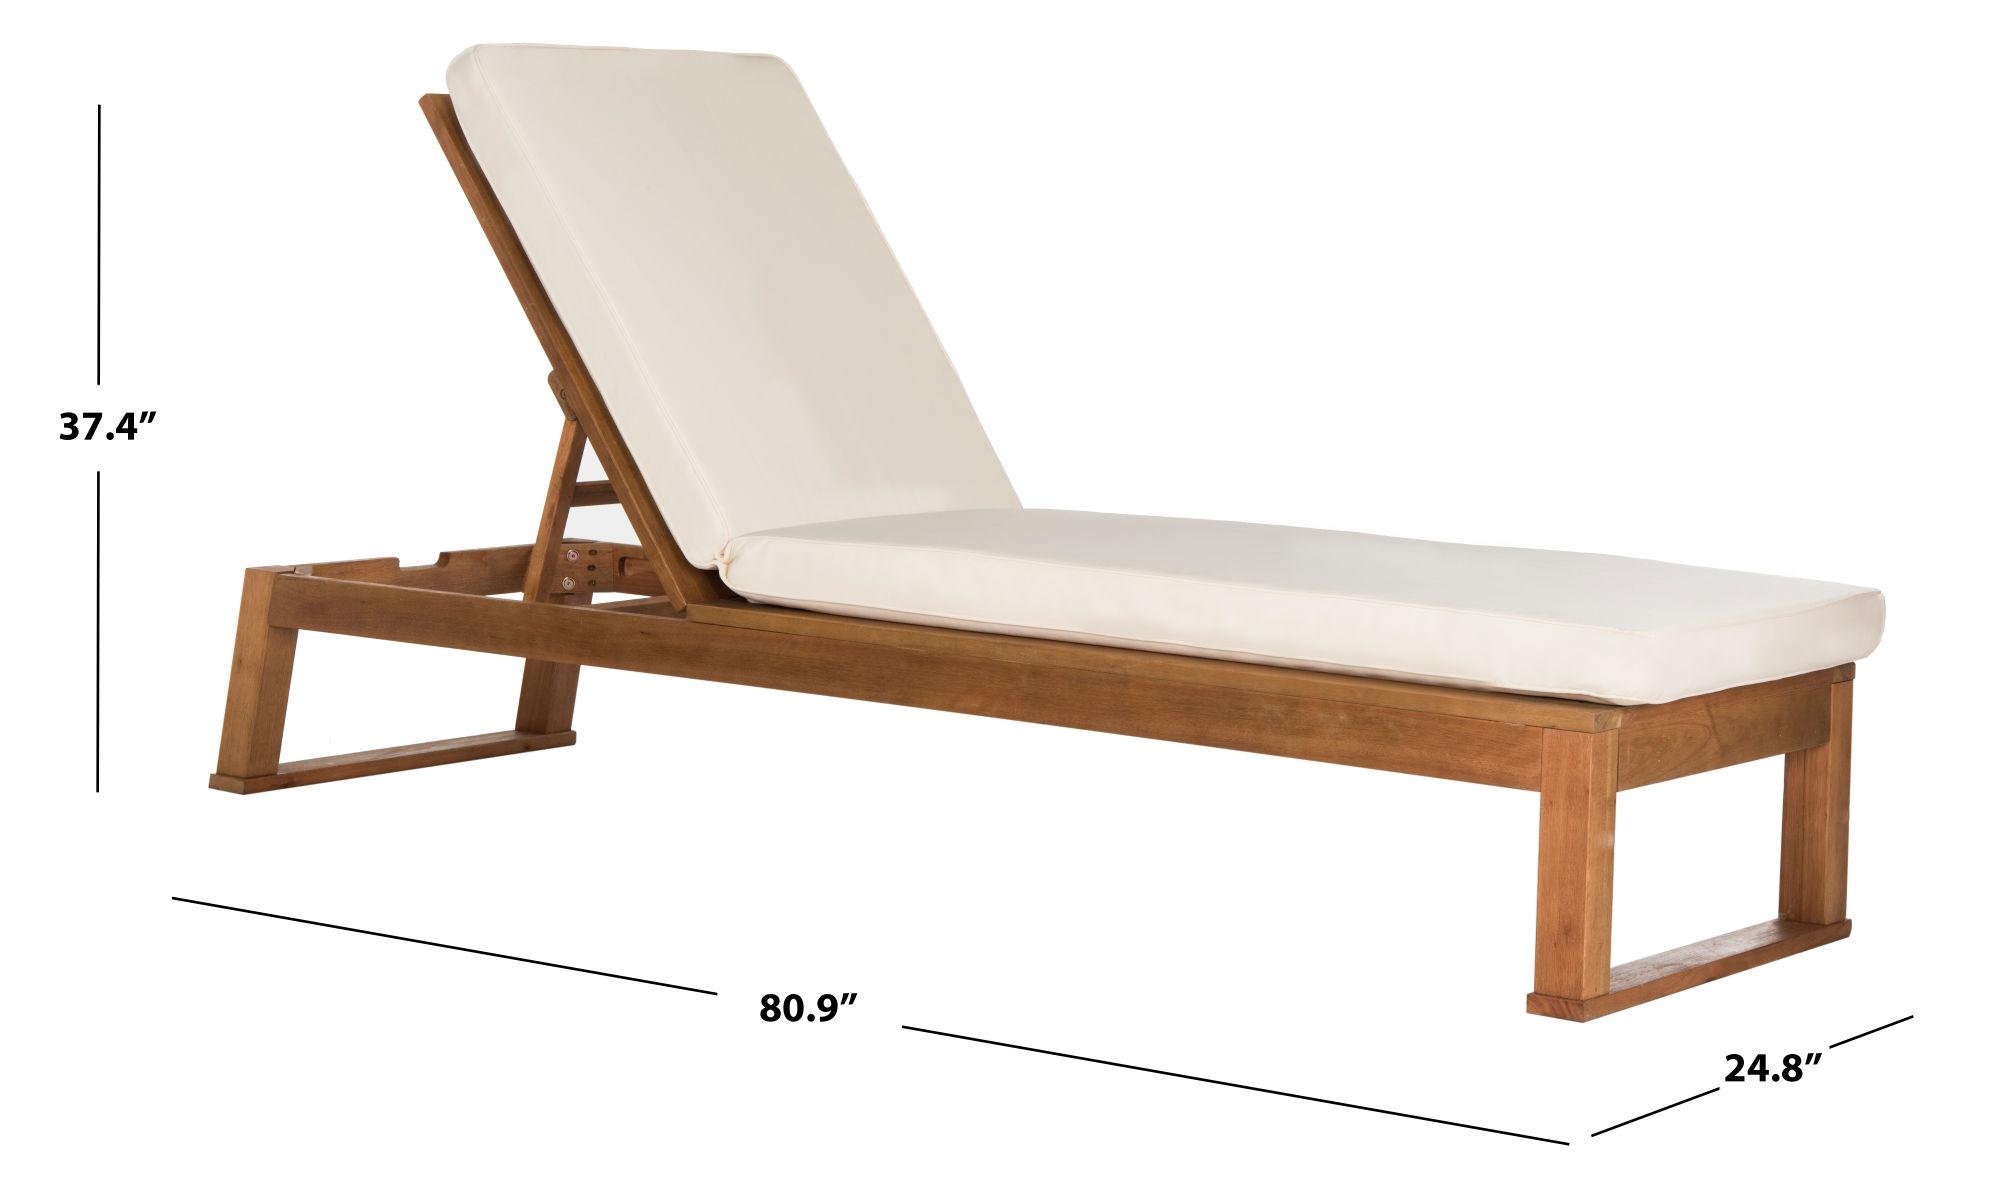 Solano Sunlounger on Safavieh Outdoor Living Solano Sunlounger id=51034